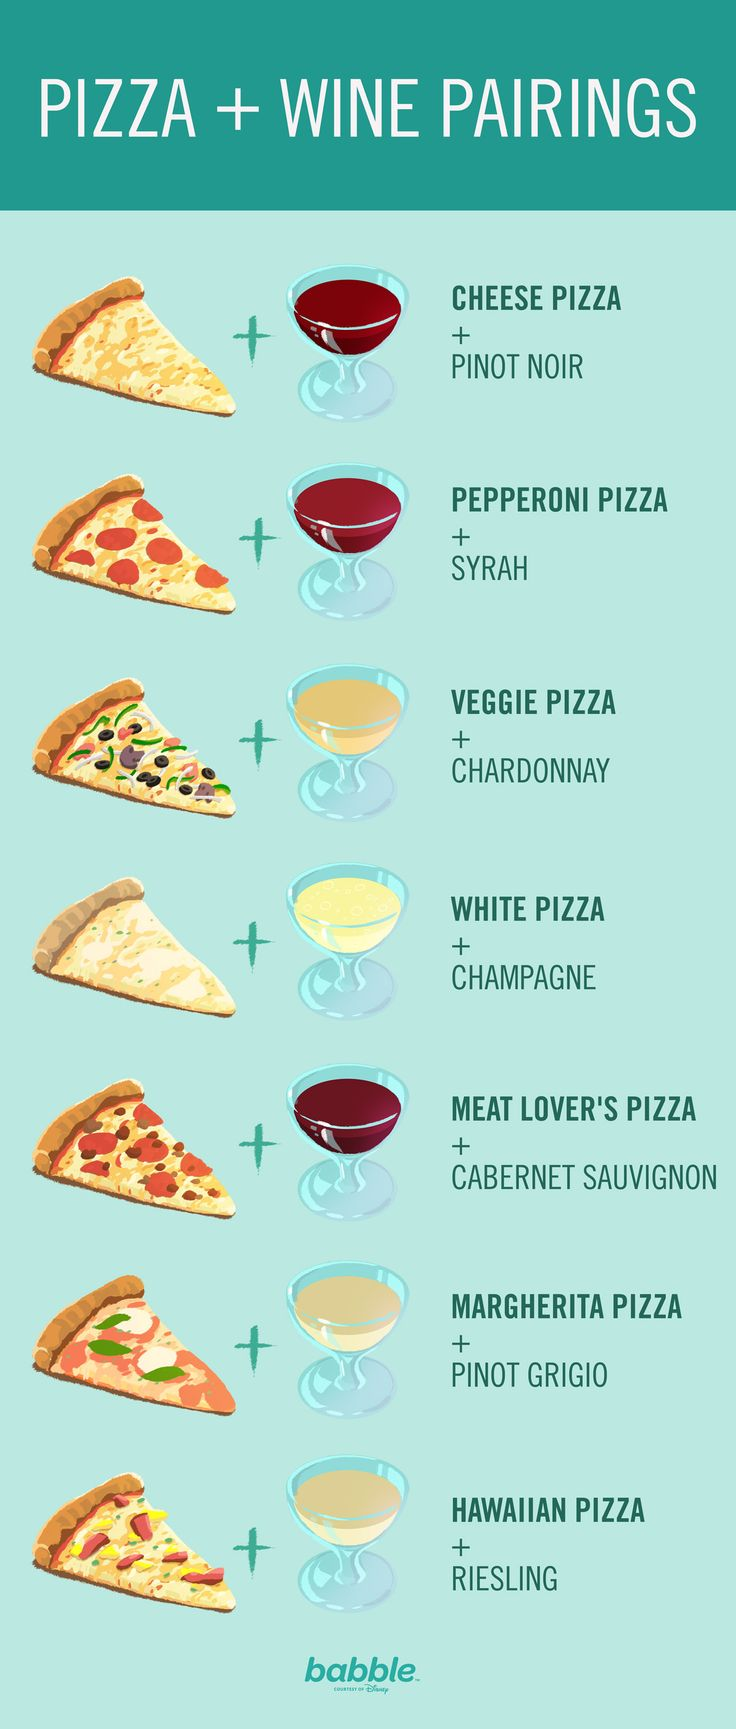 Pizza and wine. Has there ever been a better pairing? This helpful guide to the best pizza and wine pairings is sure to come in handy on Wine Wednesdays, Pizza Fridays, or any day of the week!